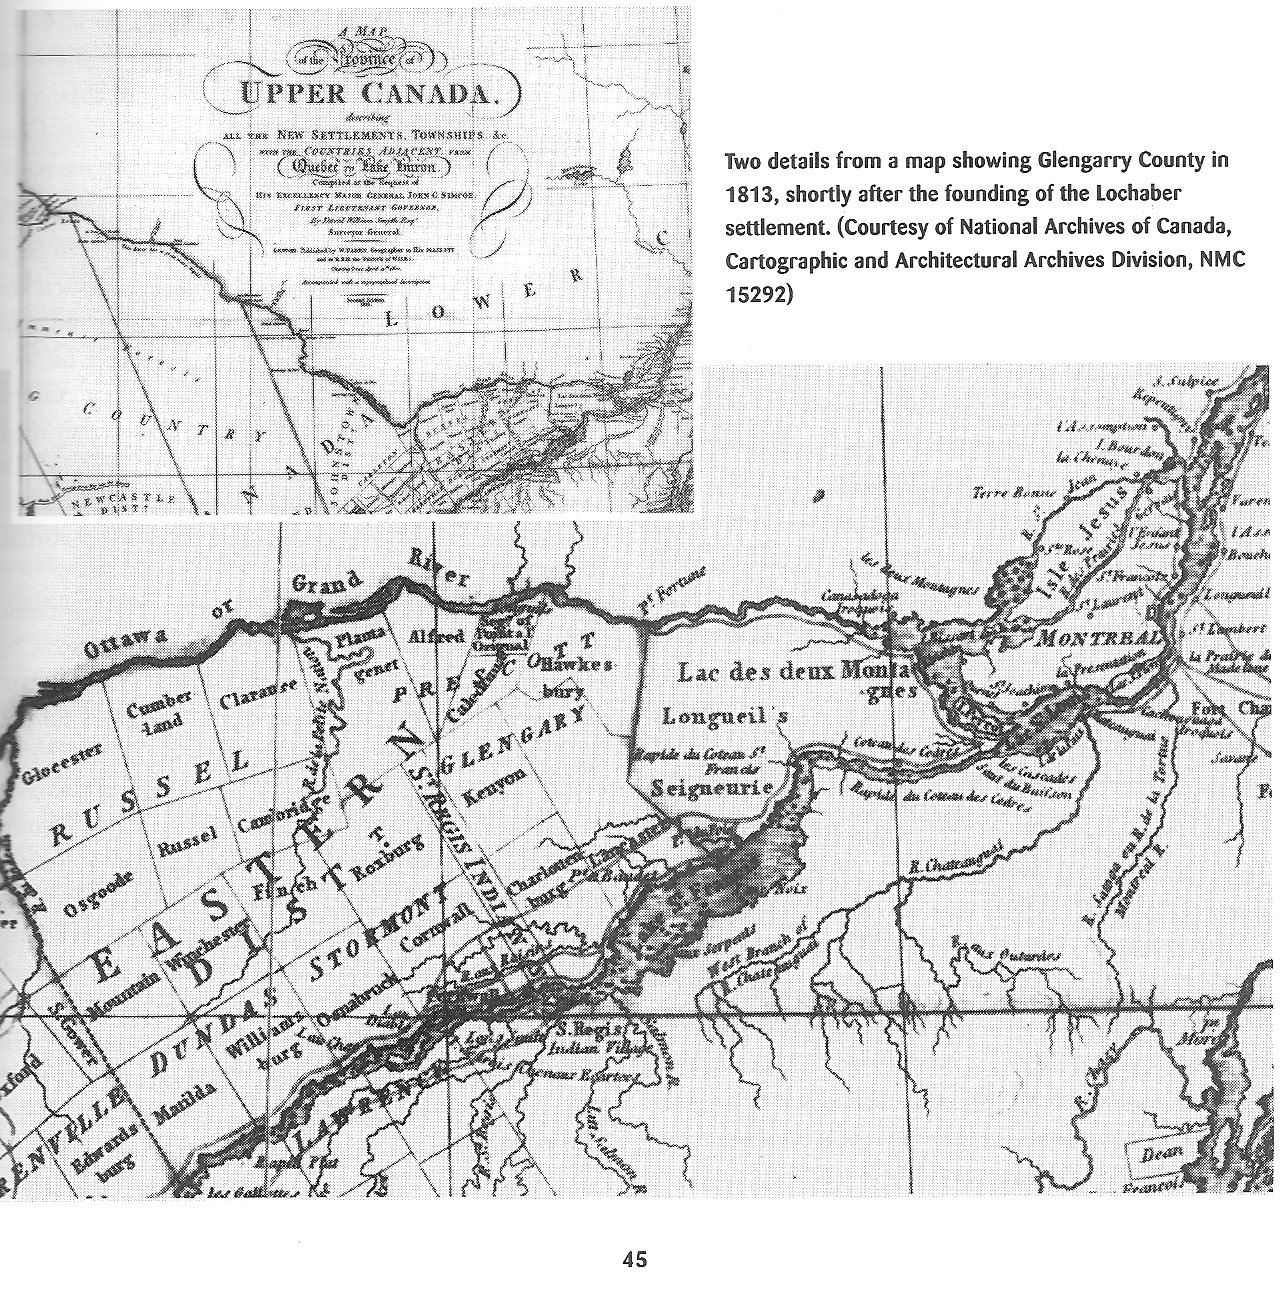 Glengarry County Map, Ontario, Canada, in 1813